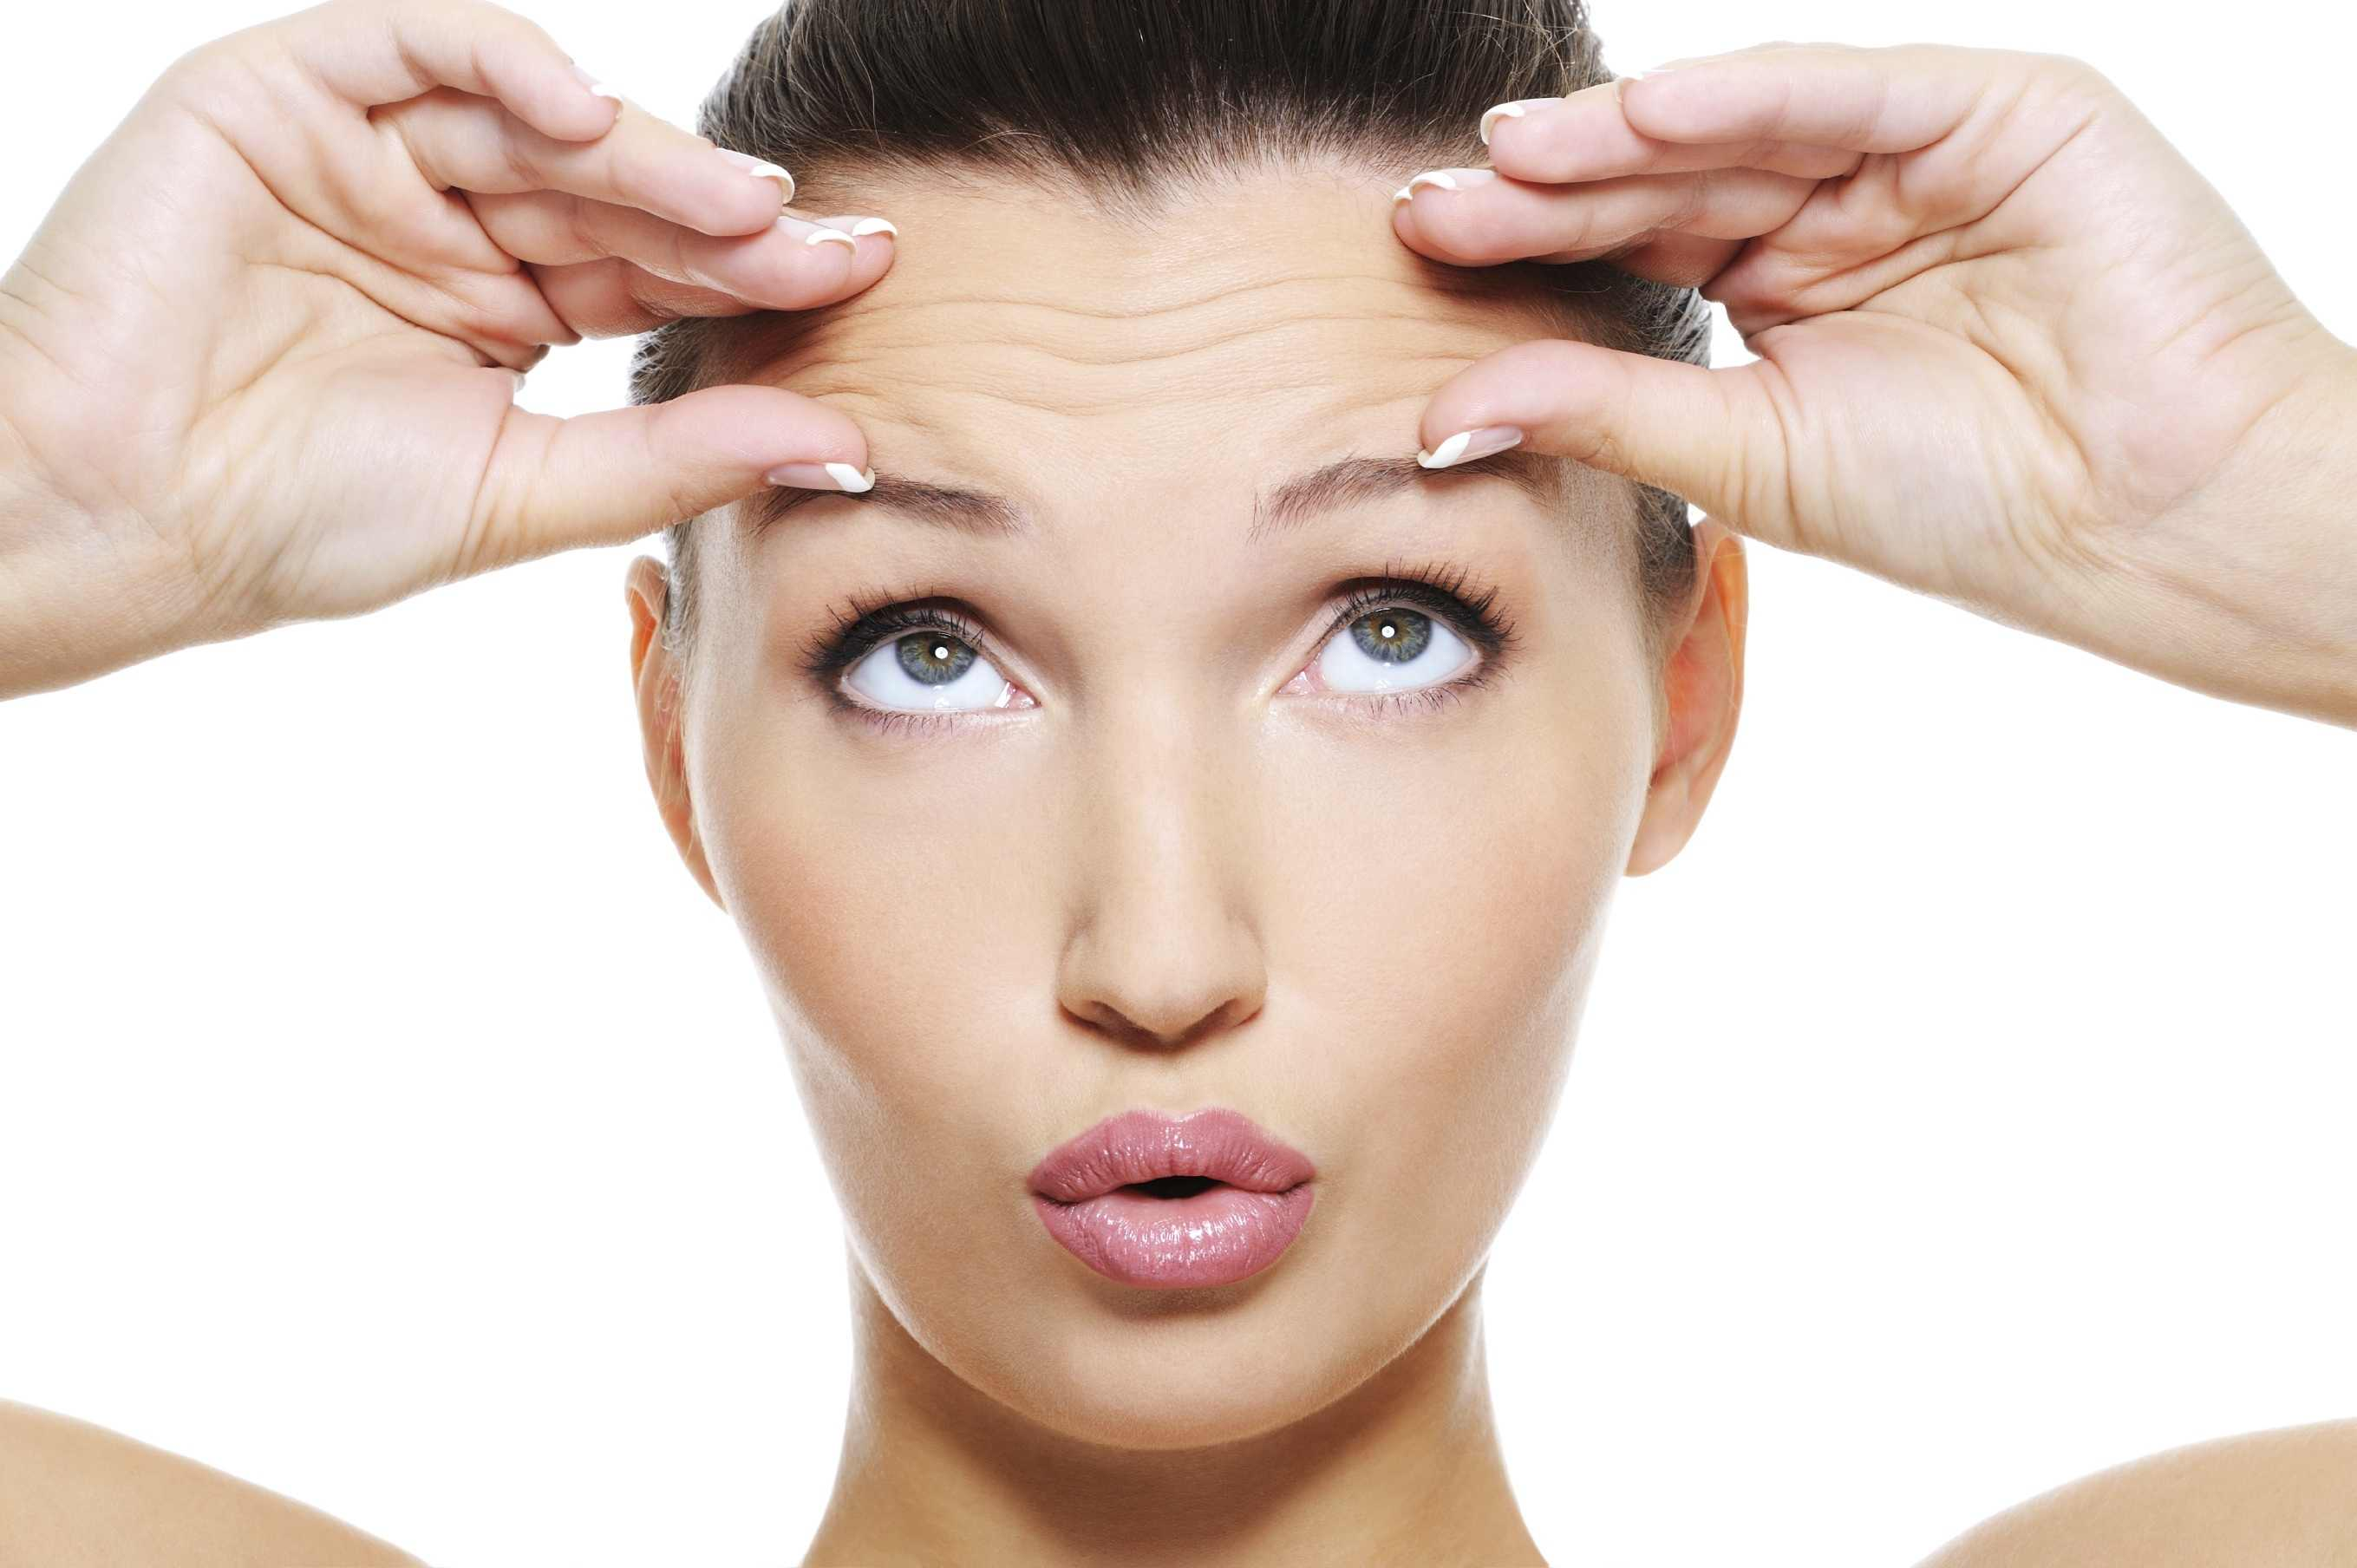 Will Botox Make My Wrinkles Worse?